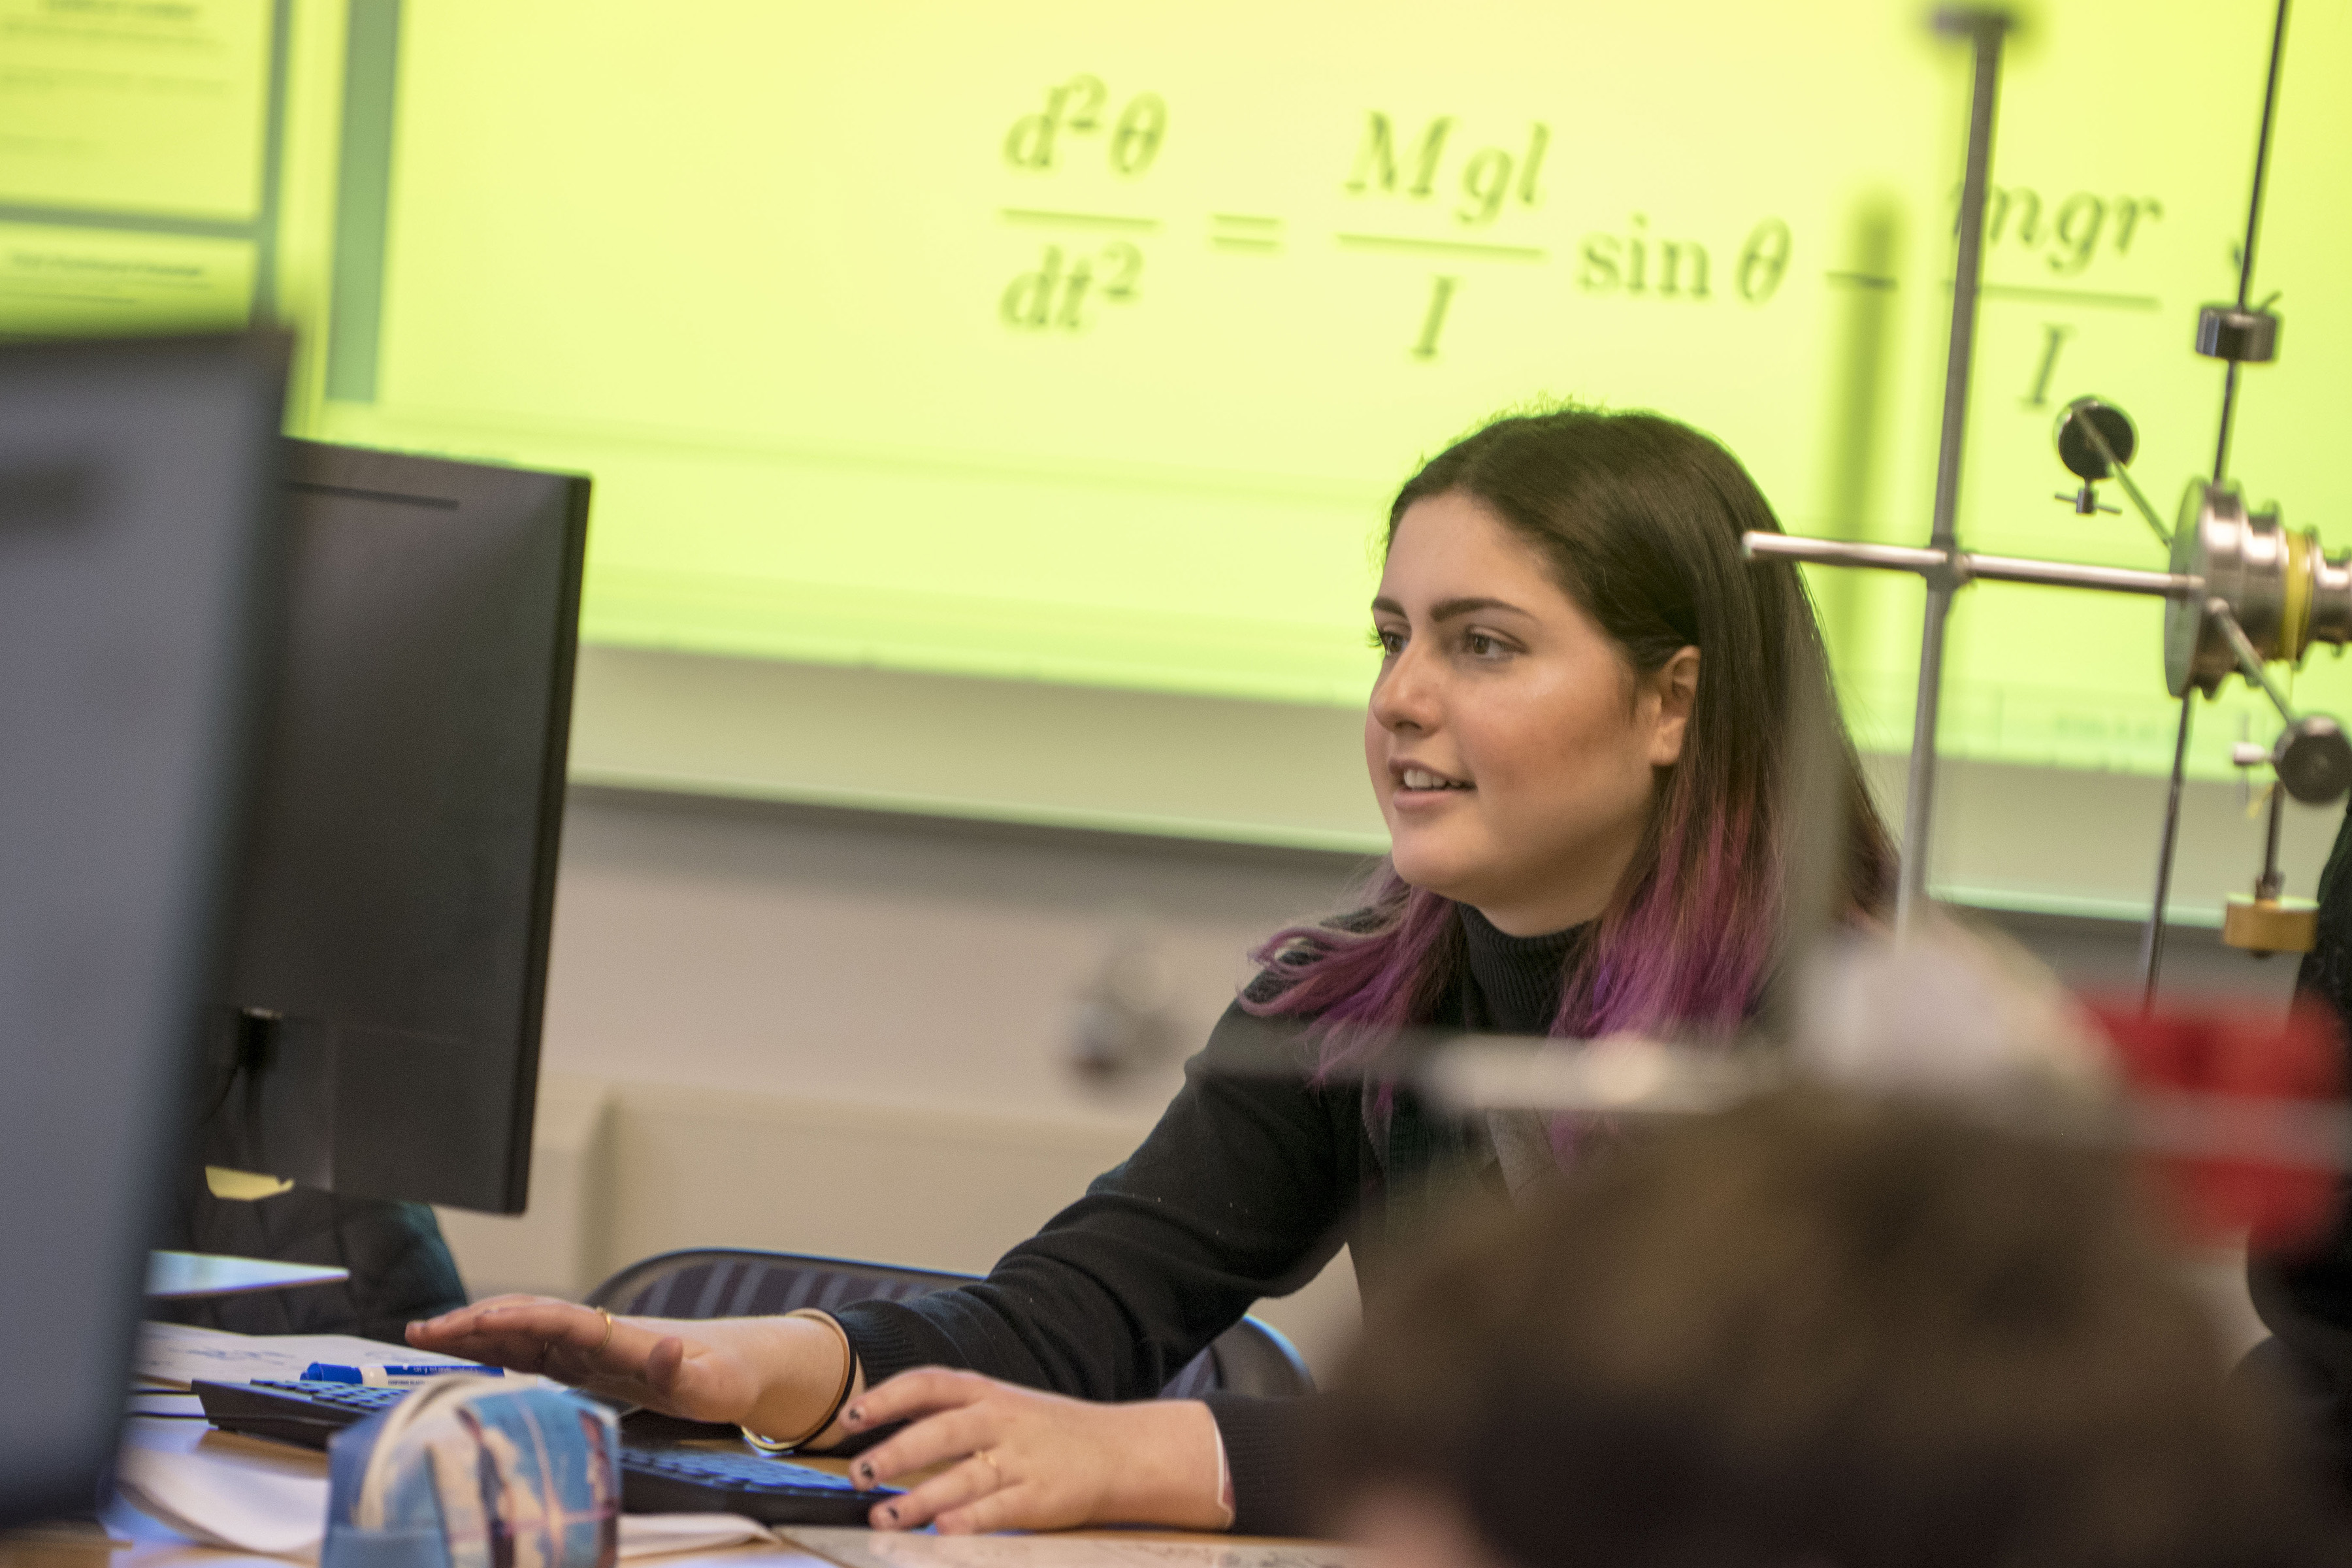 Undergraduate Anna Regan takes part in an introductory course for physics majors held in a newly renovated physics classroom where students are learning concepts through hands-on activities integrated into lectures. (Garrett Spahn '18 (CLAS)/UConn Photo)